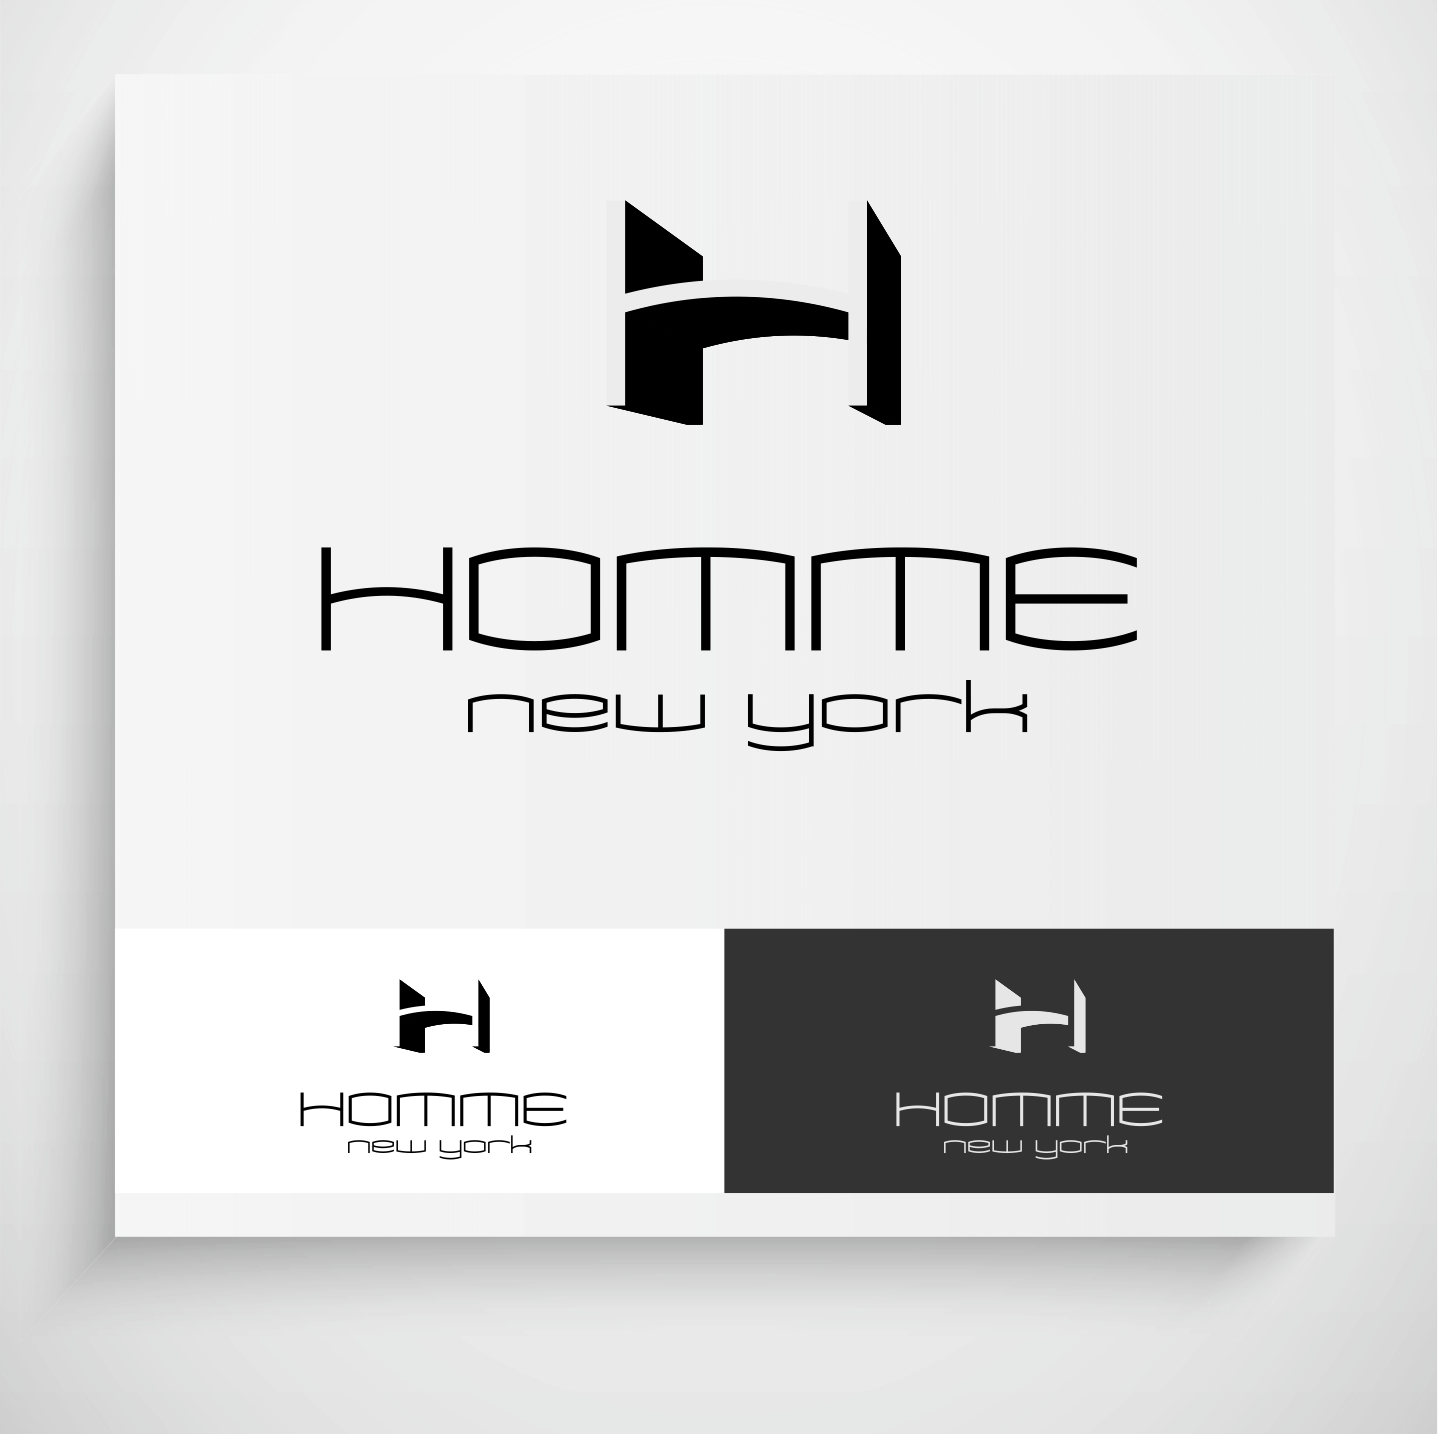 Logo Design by Krzysztof Mokanek - Entry No. 114 in the Logo Design Contest Artistic Logo Design for HOMME | NEW YORK.